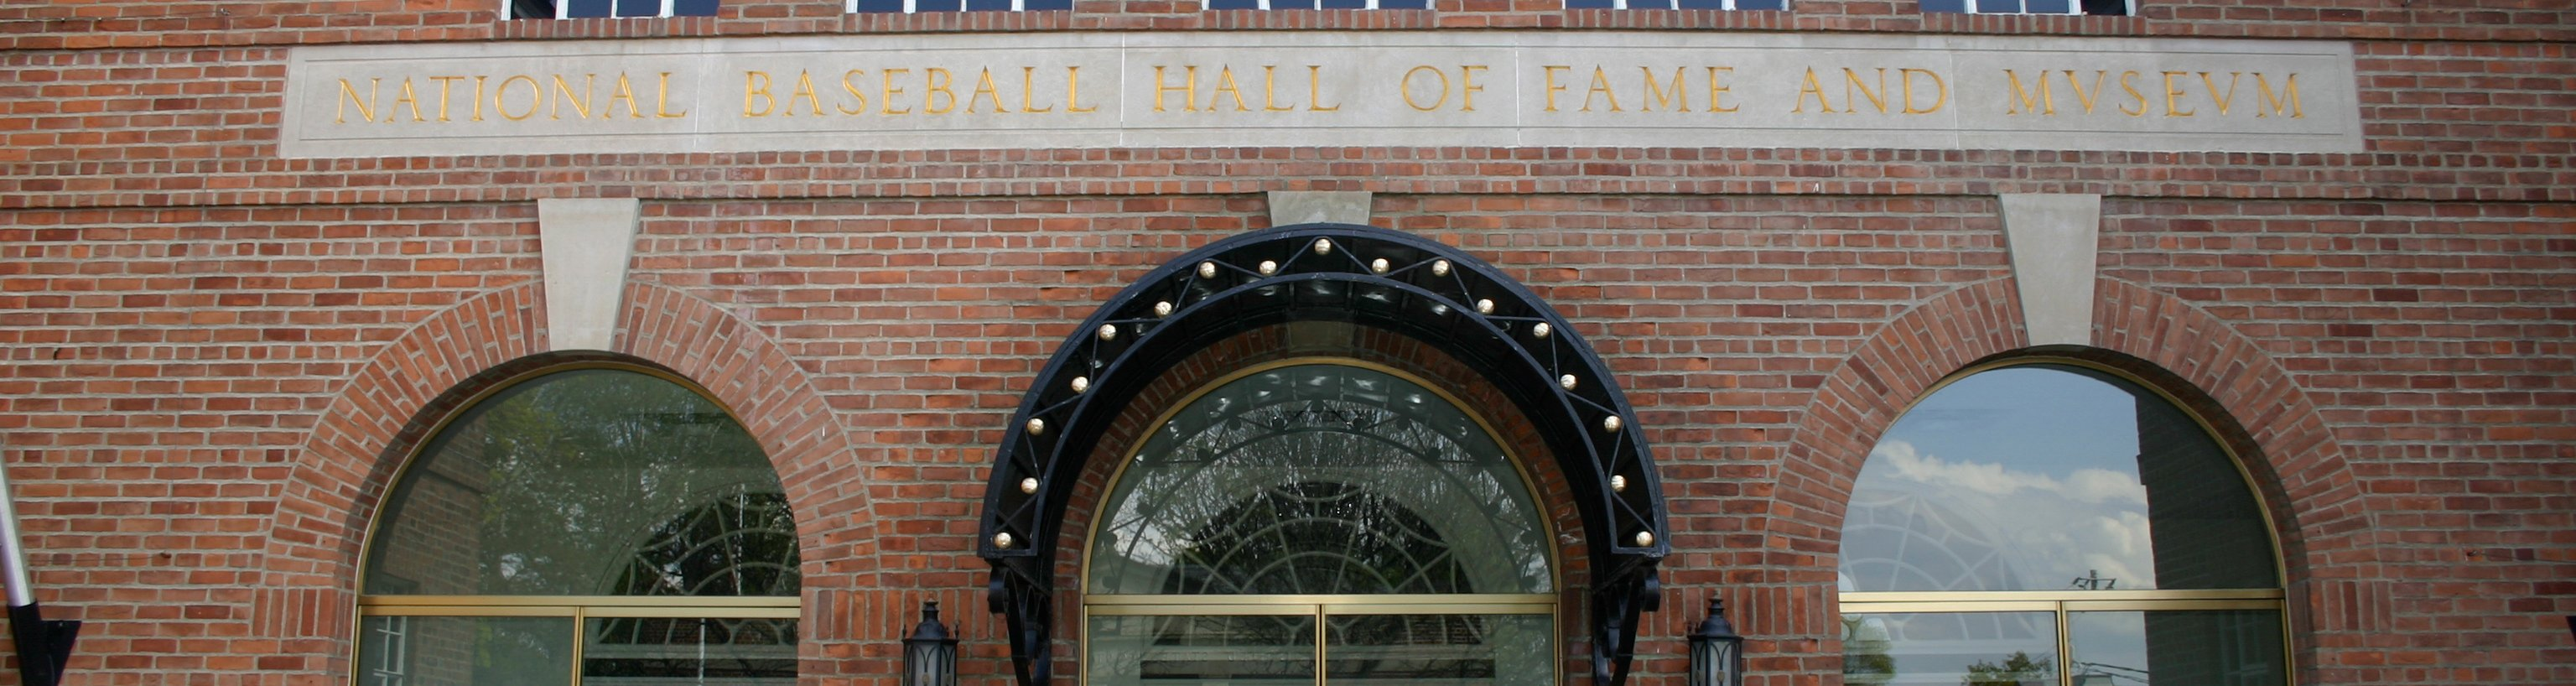 Hall of Fame,Cooperstown,Baseball trips